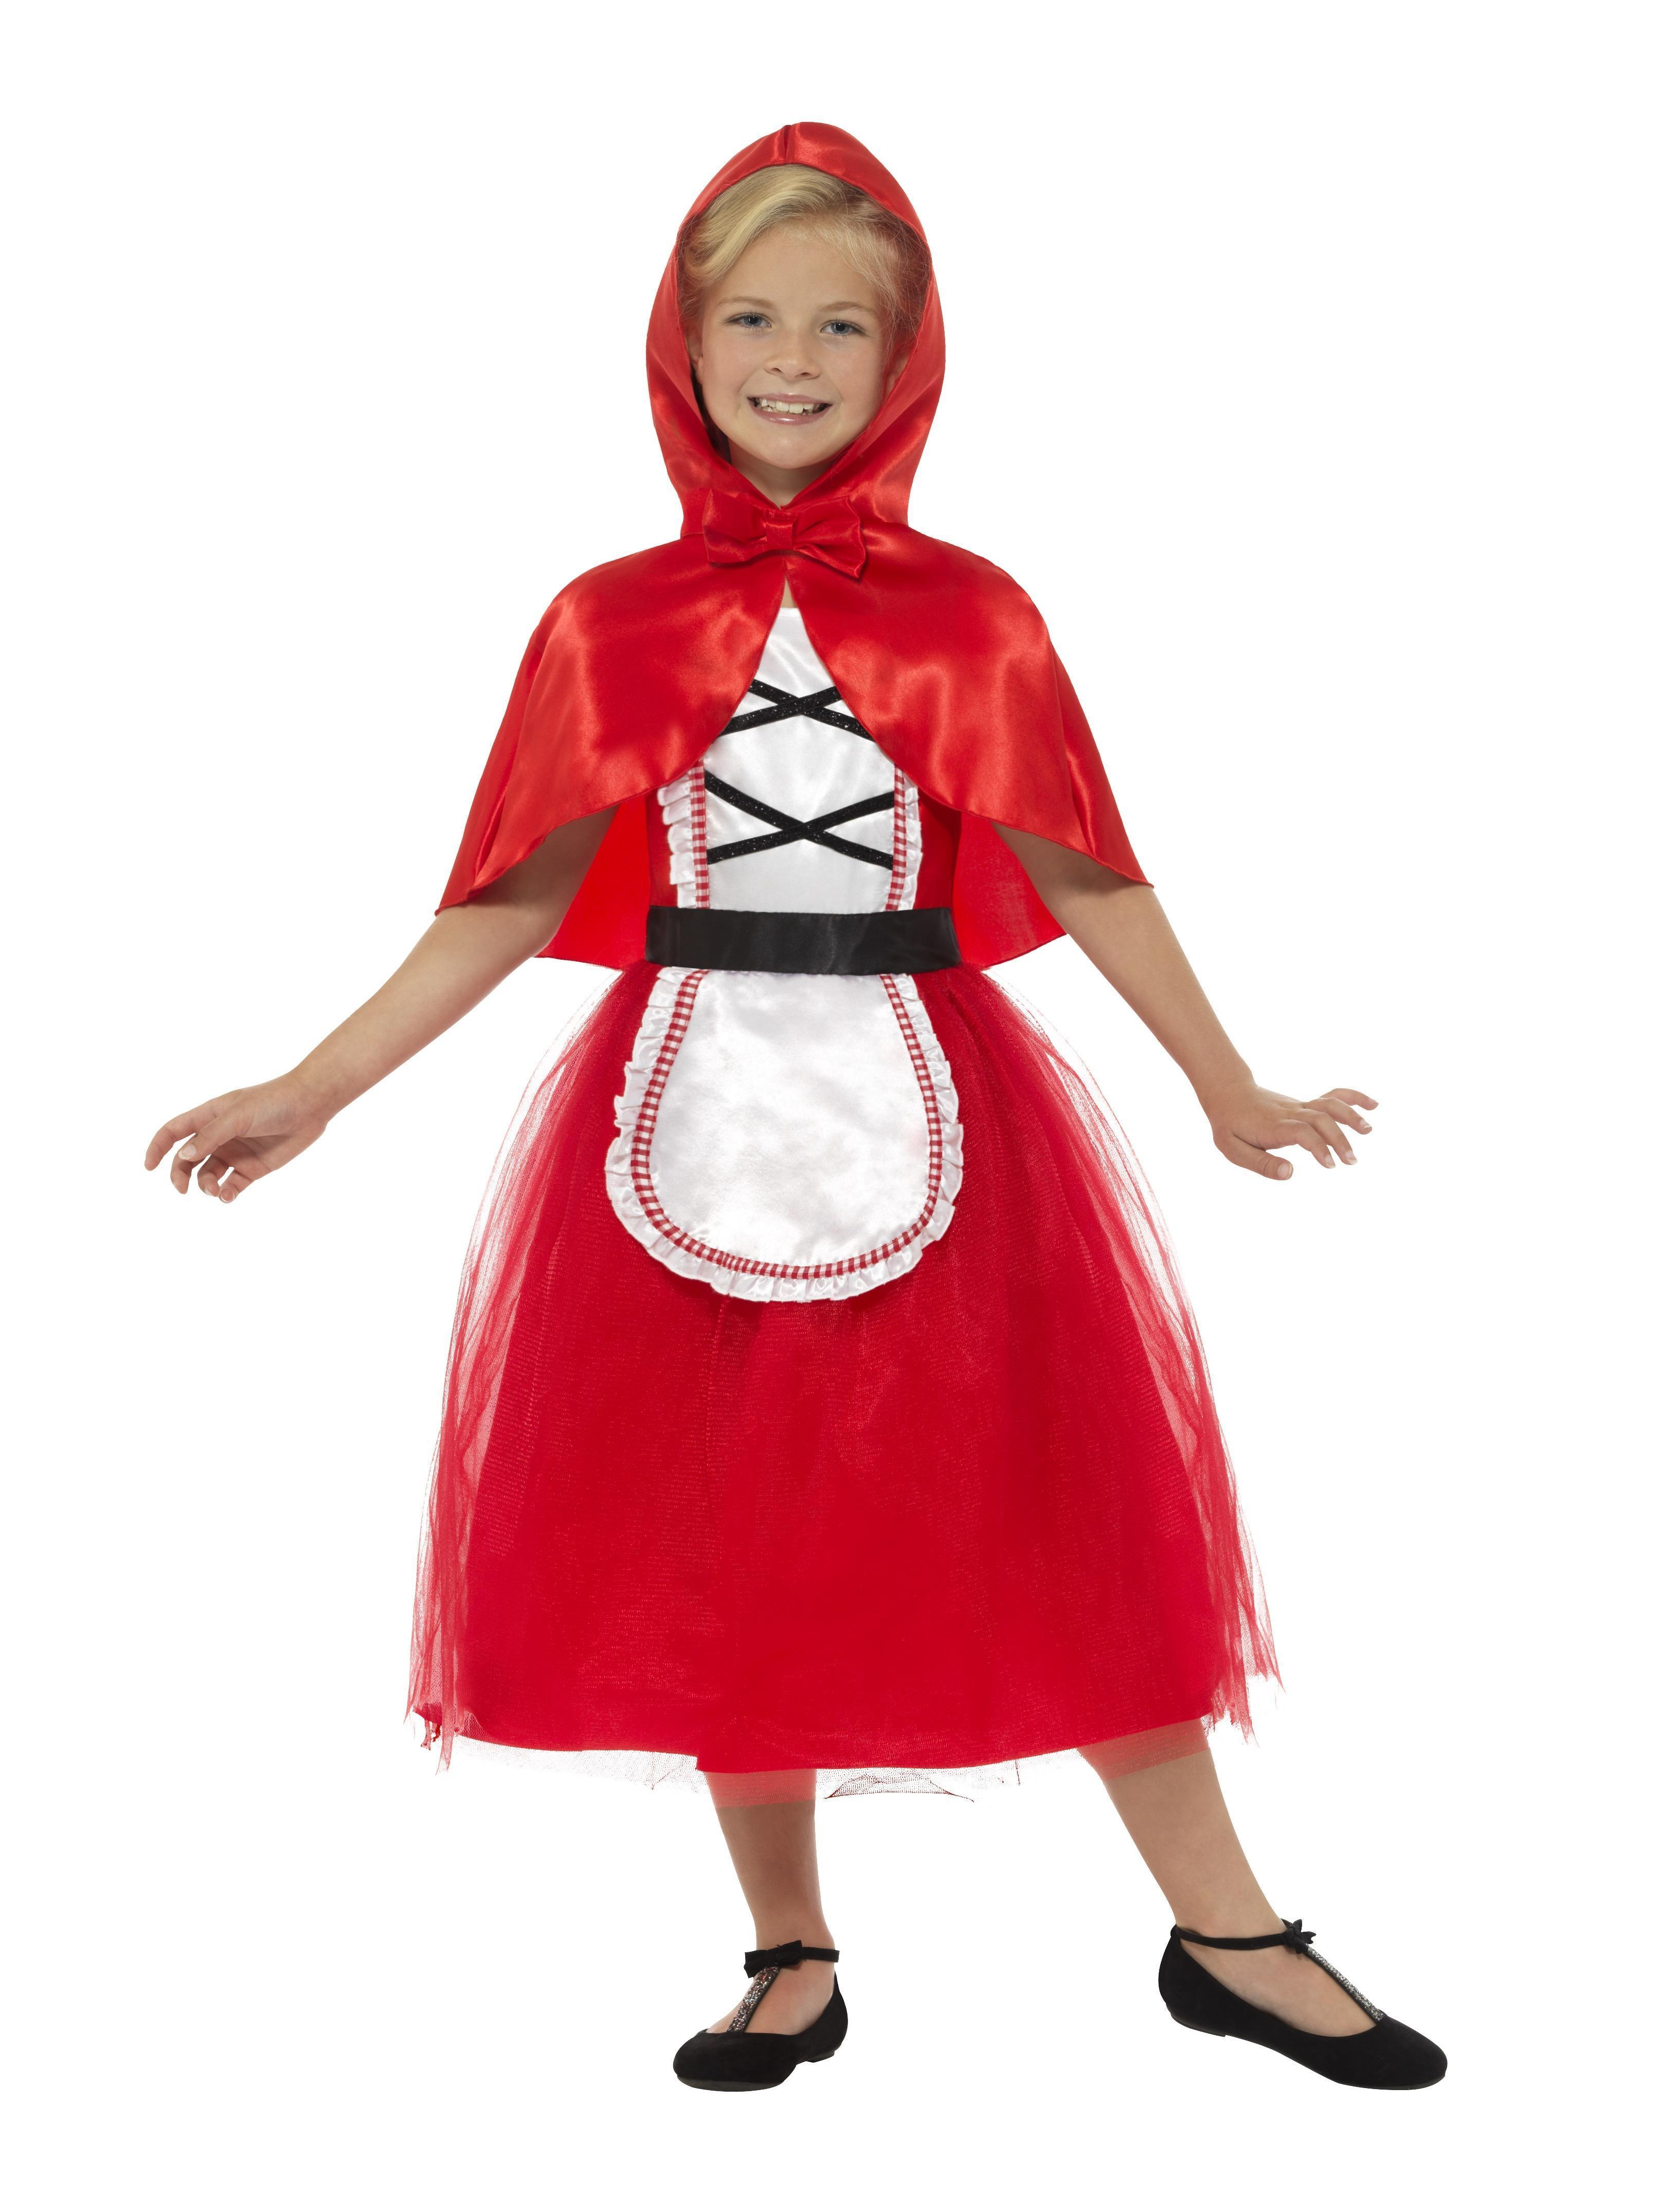 Kids Red Riding Hood Costume Deluxe